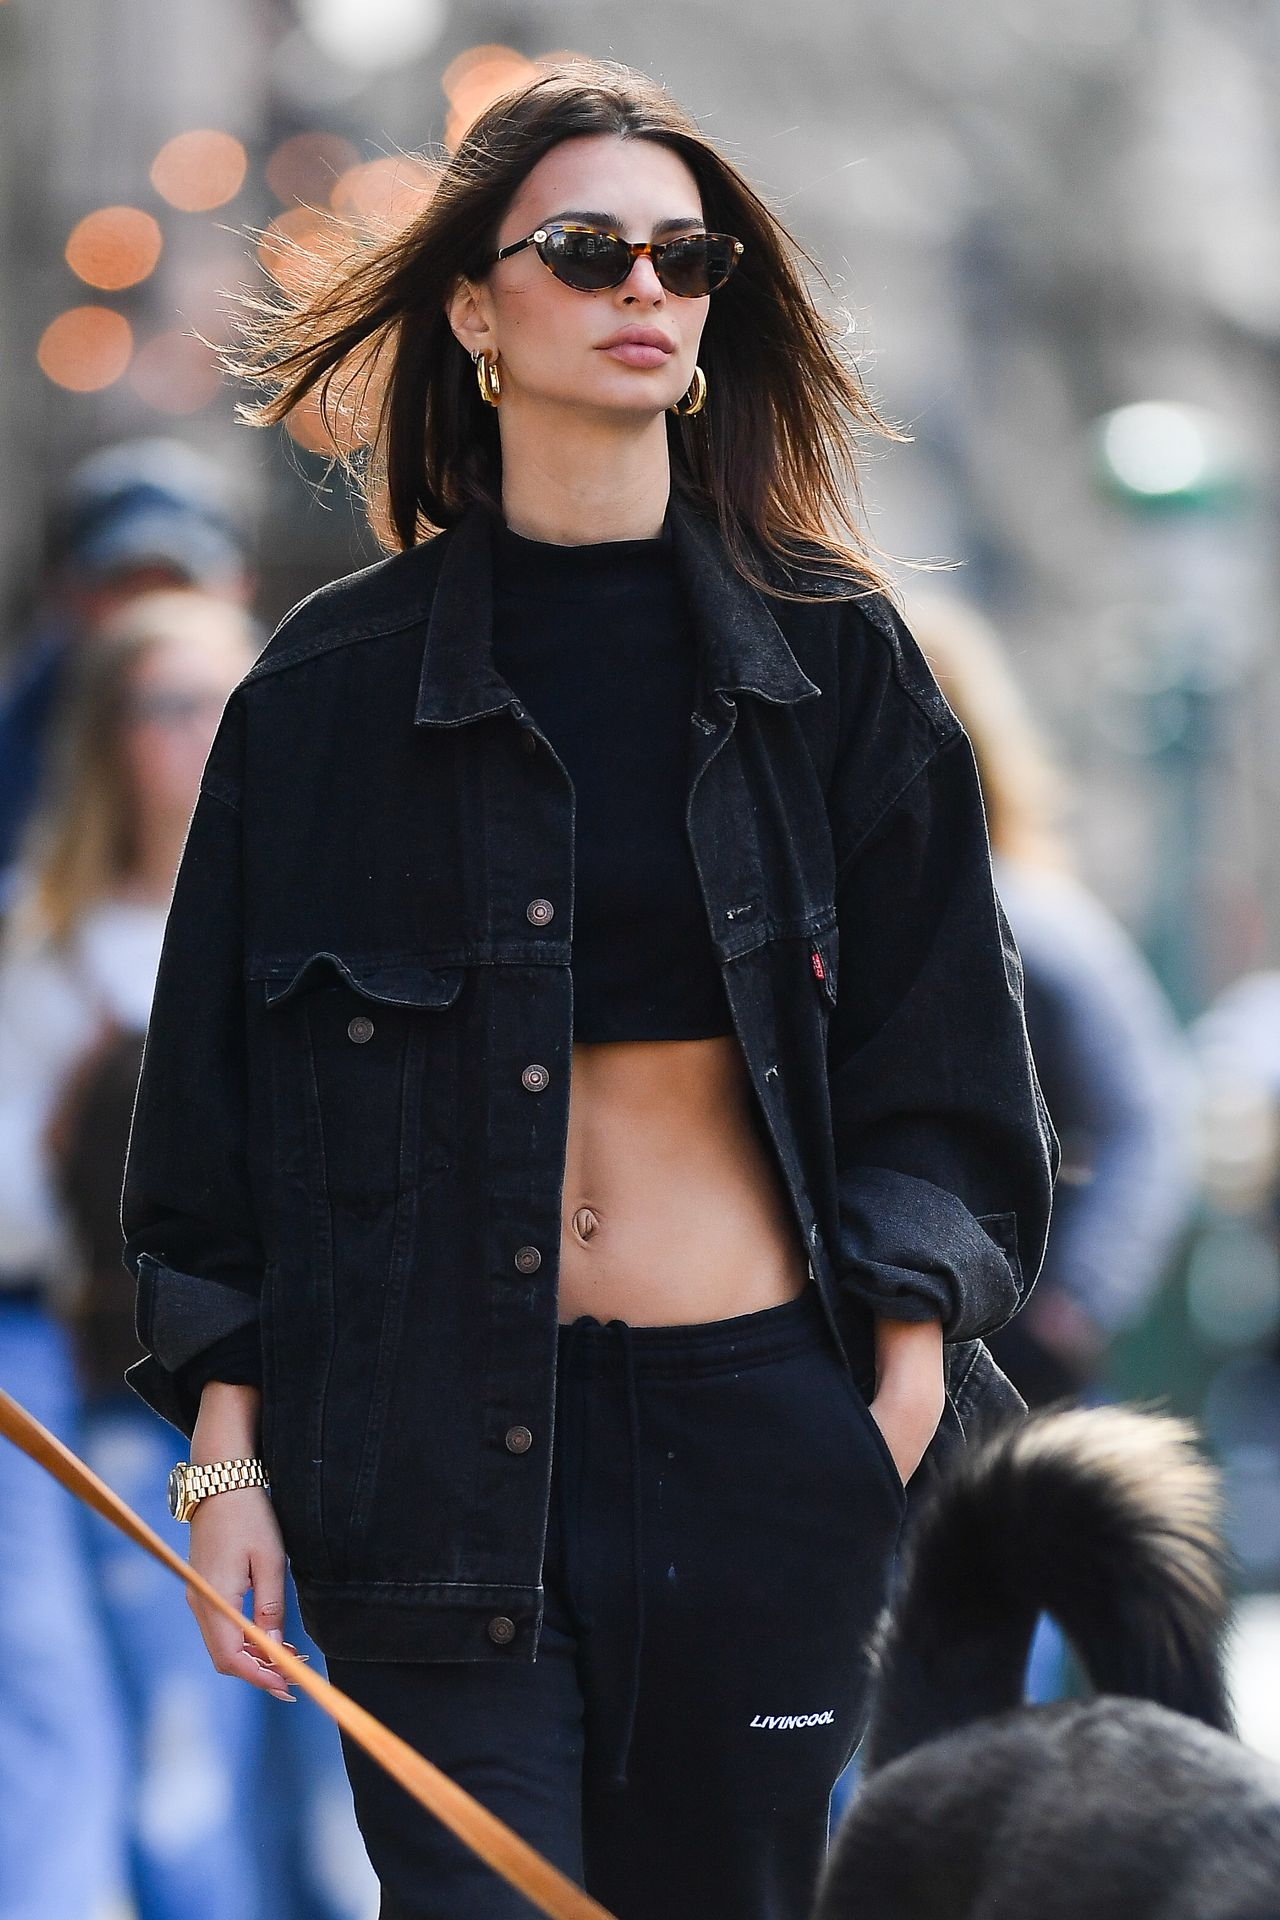 Emily Ratajkowski Walks With Her Dog Colombo In Nyc 0025